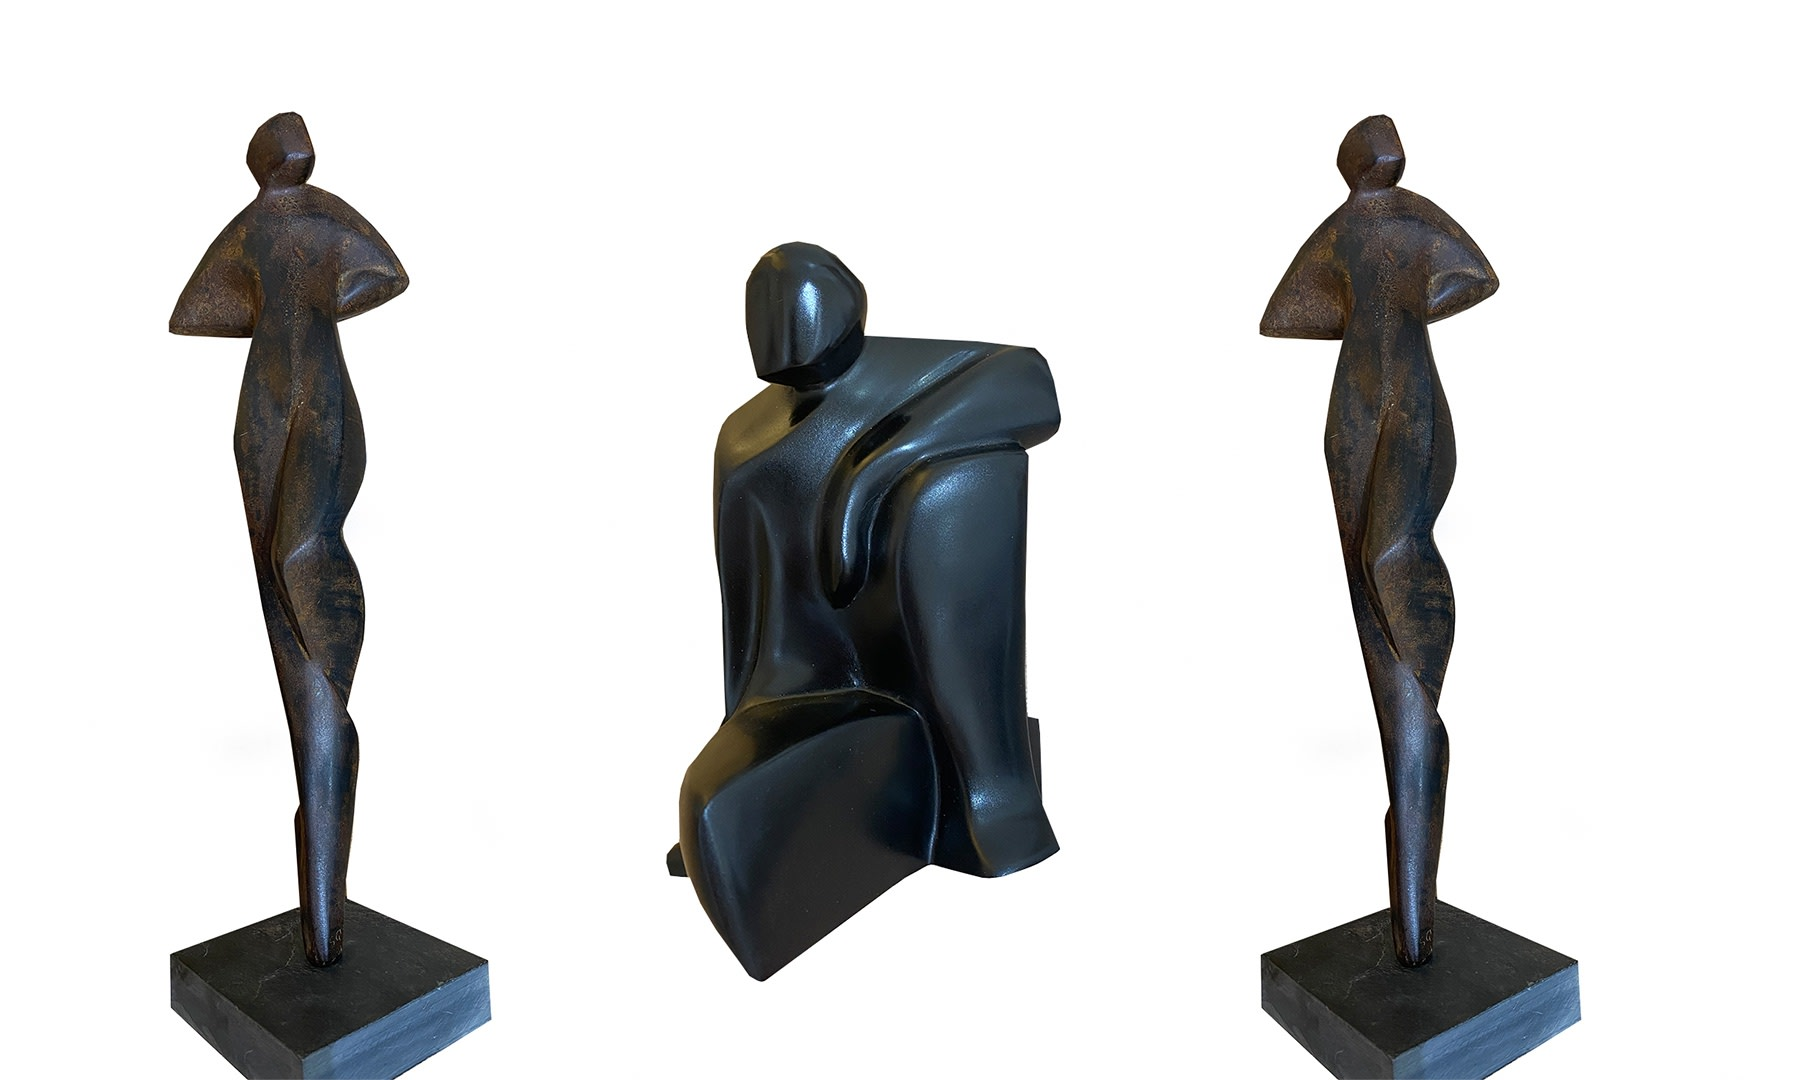 New work by Sally Grant : The sculptures are expressionistic, semi abstract figures and heads. Each piece starts with a clay model allowing a spontaneous fluid form to be captured, which is, after various stages of refinement, cast into bronze or resin.